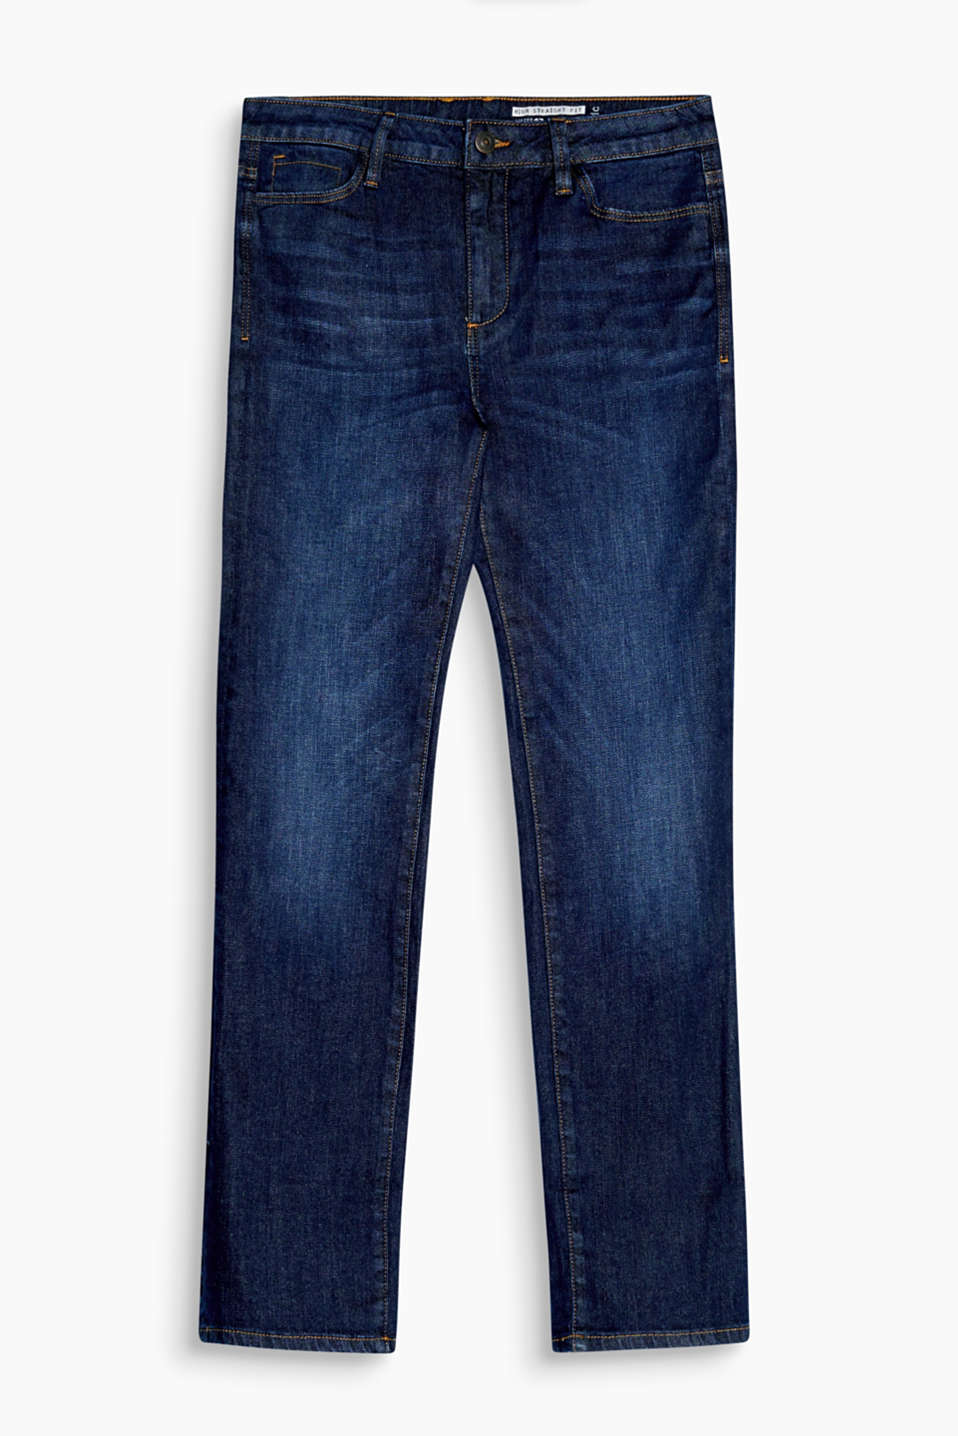 Casual and cool, relaxed high-waisted jeans with flexible hem turn-ups